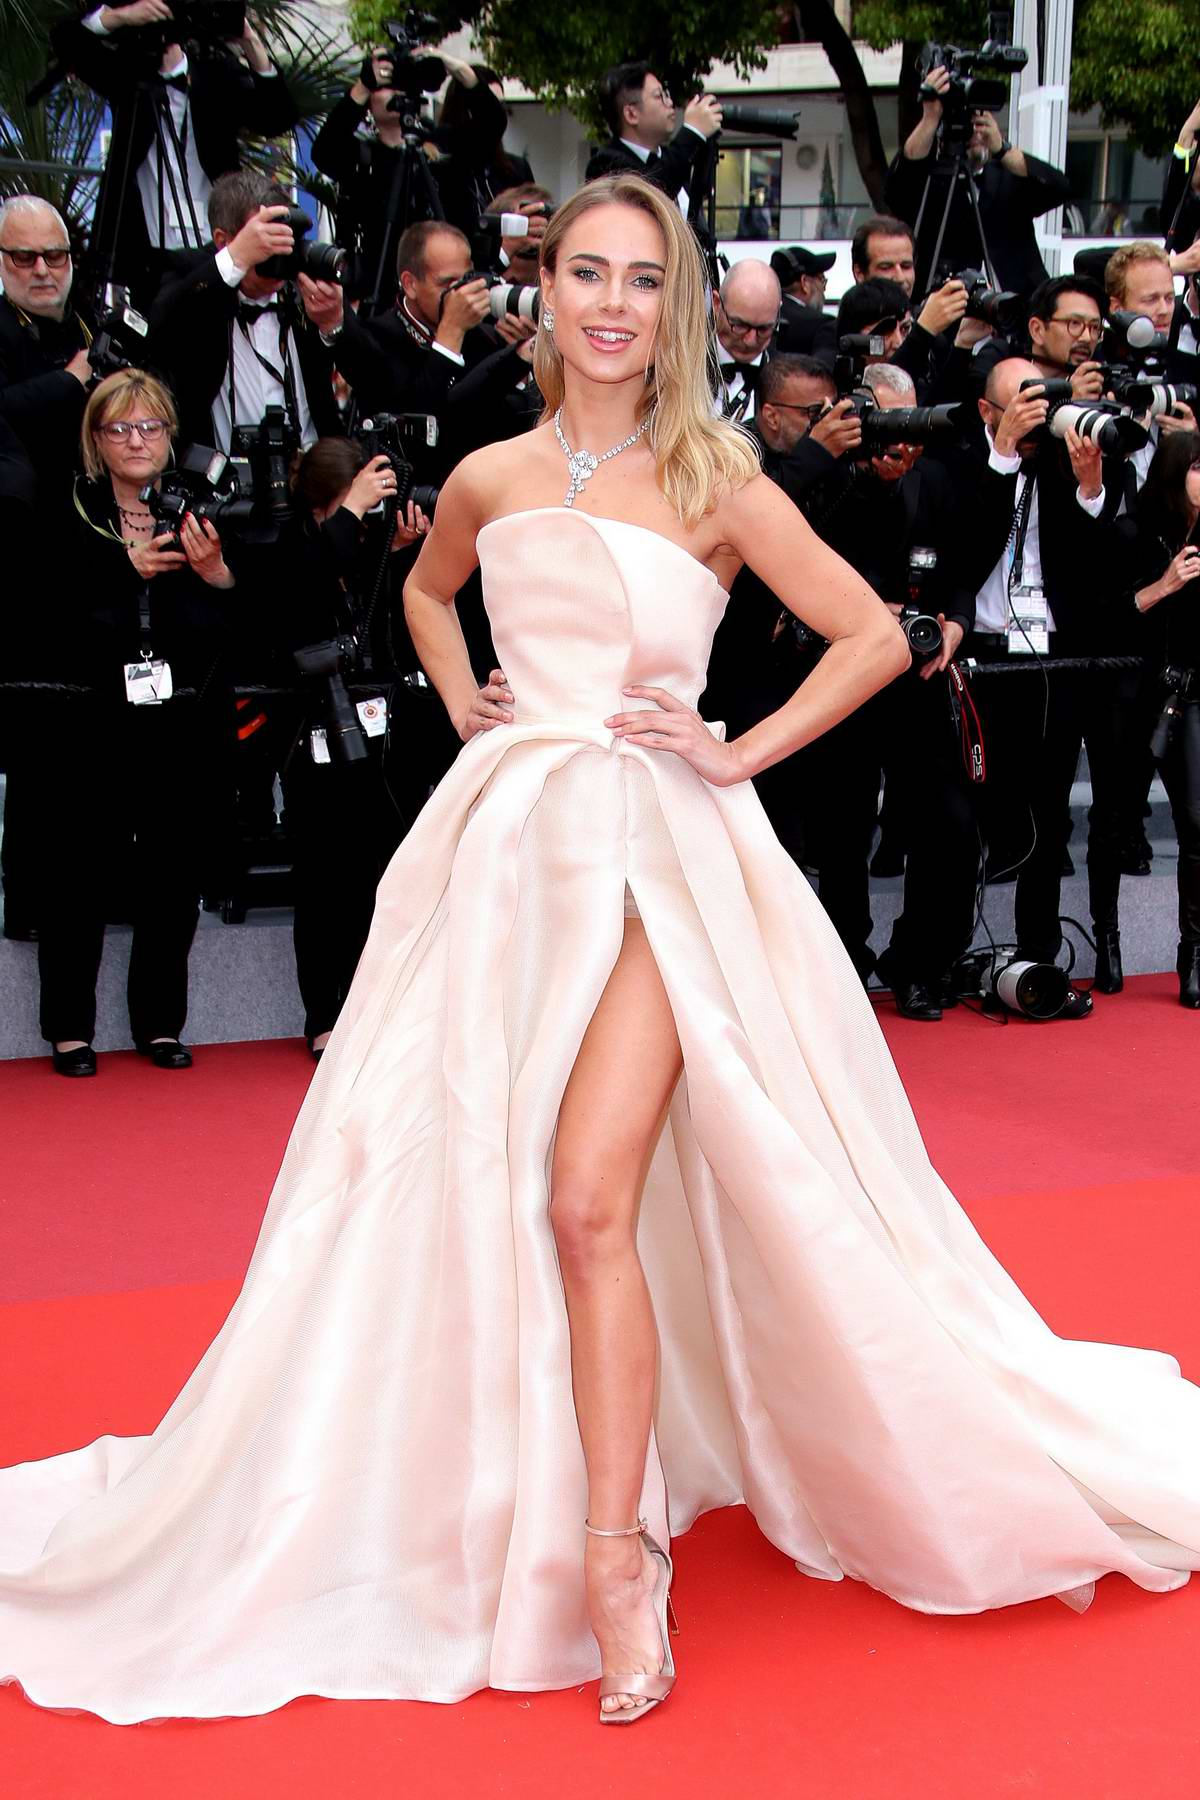 Kimberley Garner attends the screening of 'A Hidden Life' during the 72nd annual Cannes Film Festival in Cannes, France